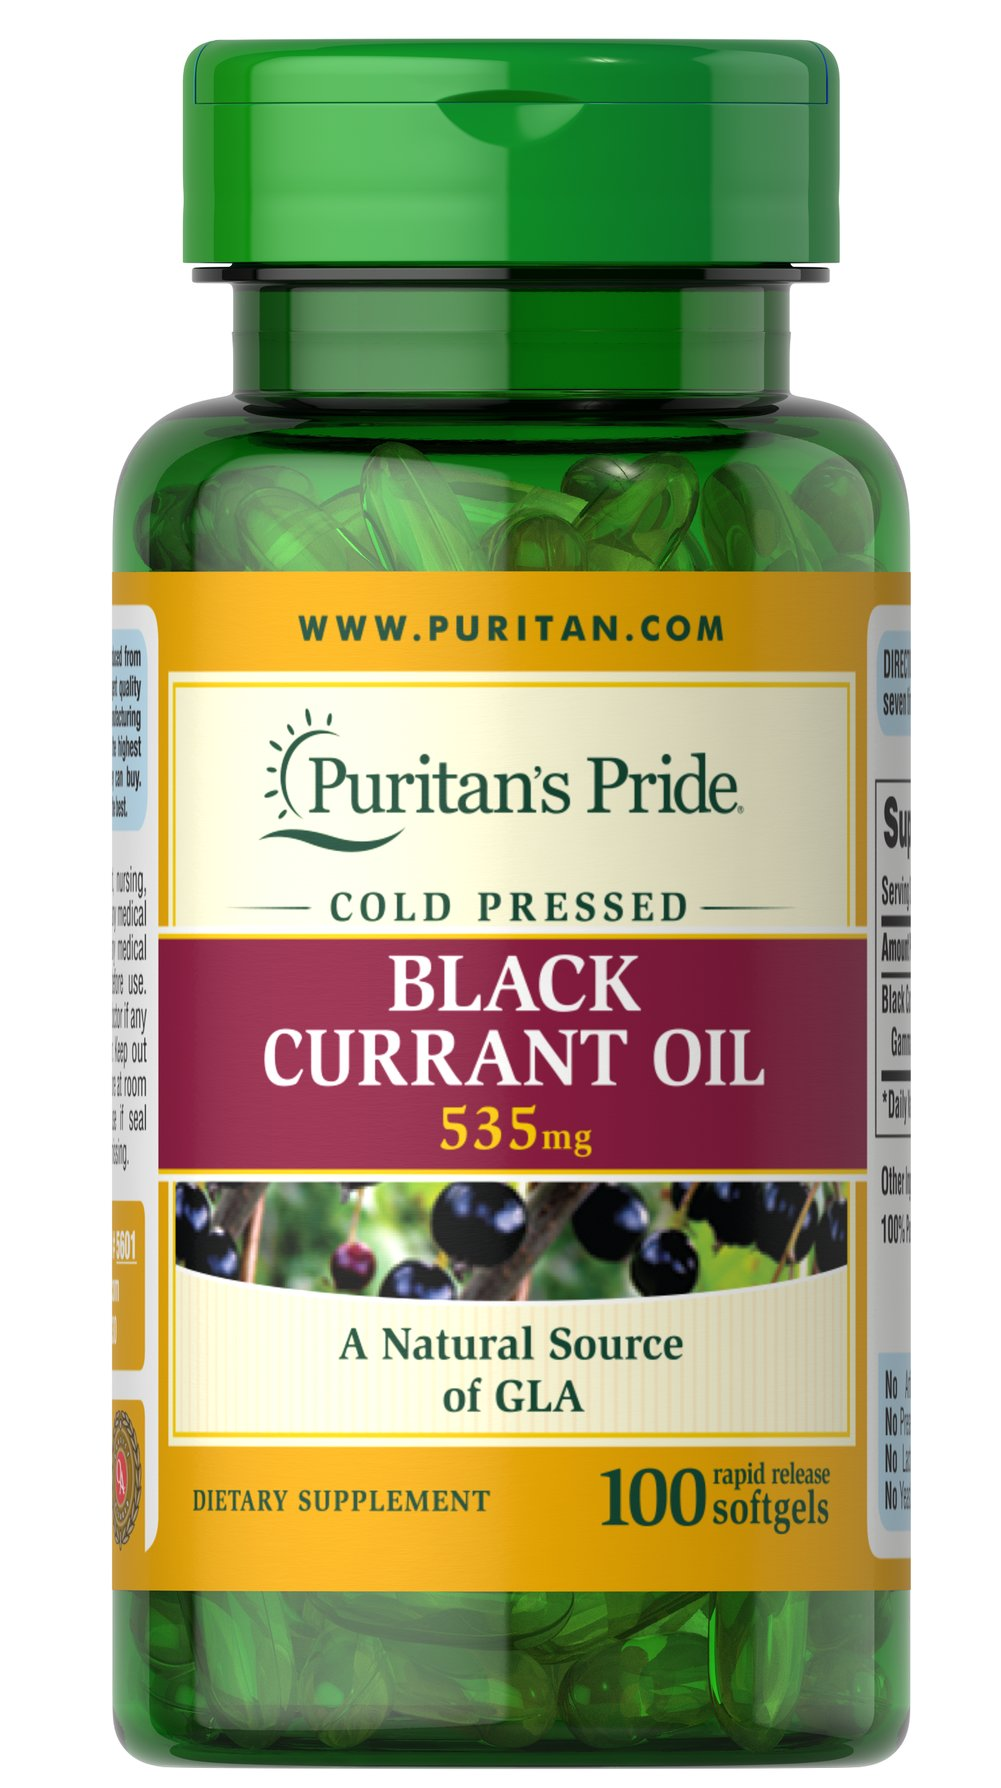 Black Currant Oil 535 mg  100 Softgels 535 mg $17.99